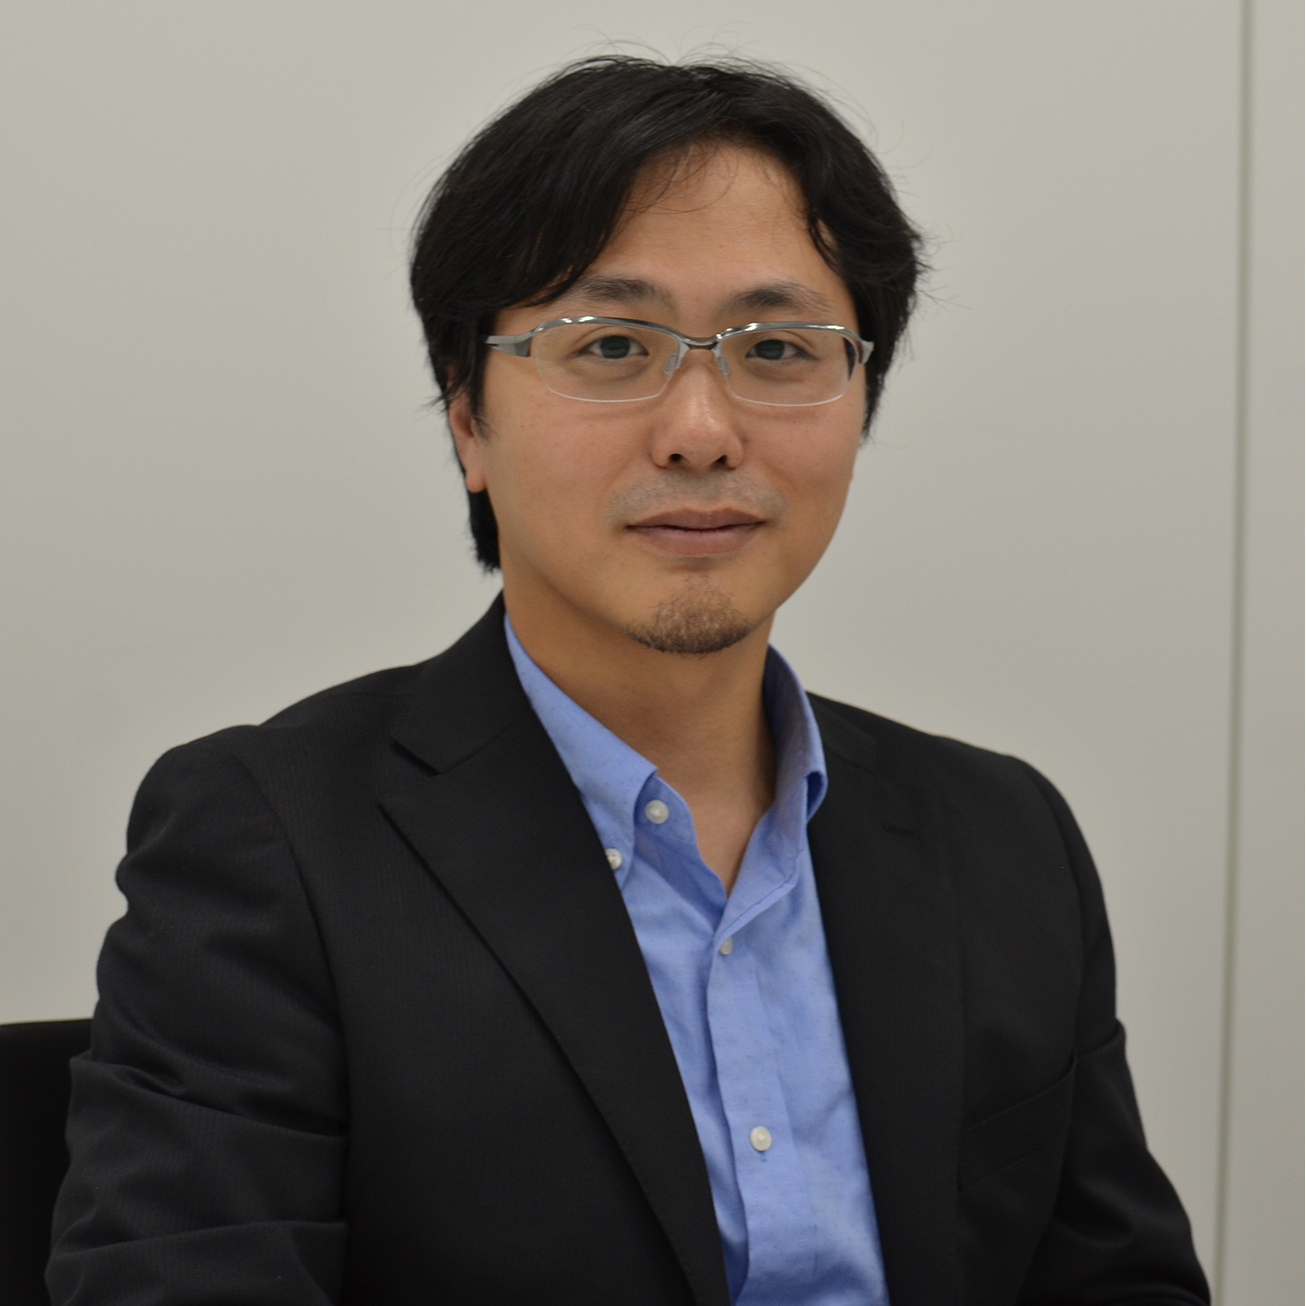 Mr Yoshikazu Takagi, General Manager - System Development Division at Jibunbank